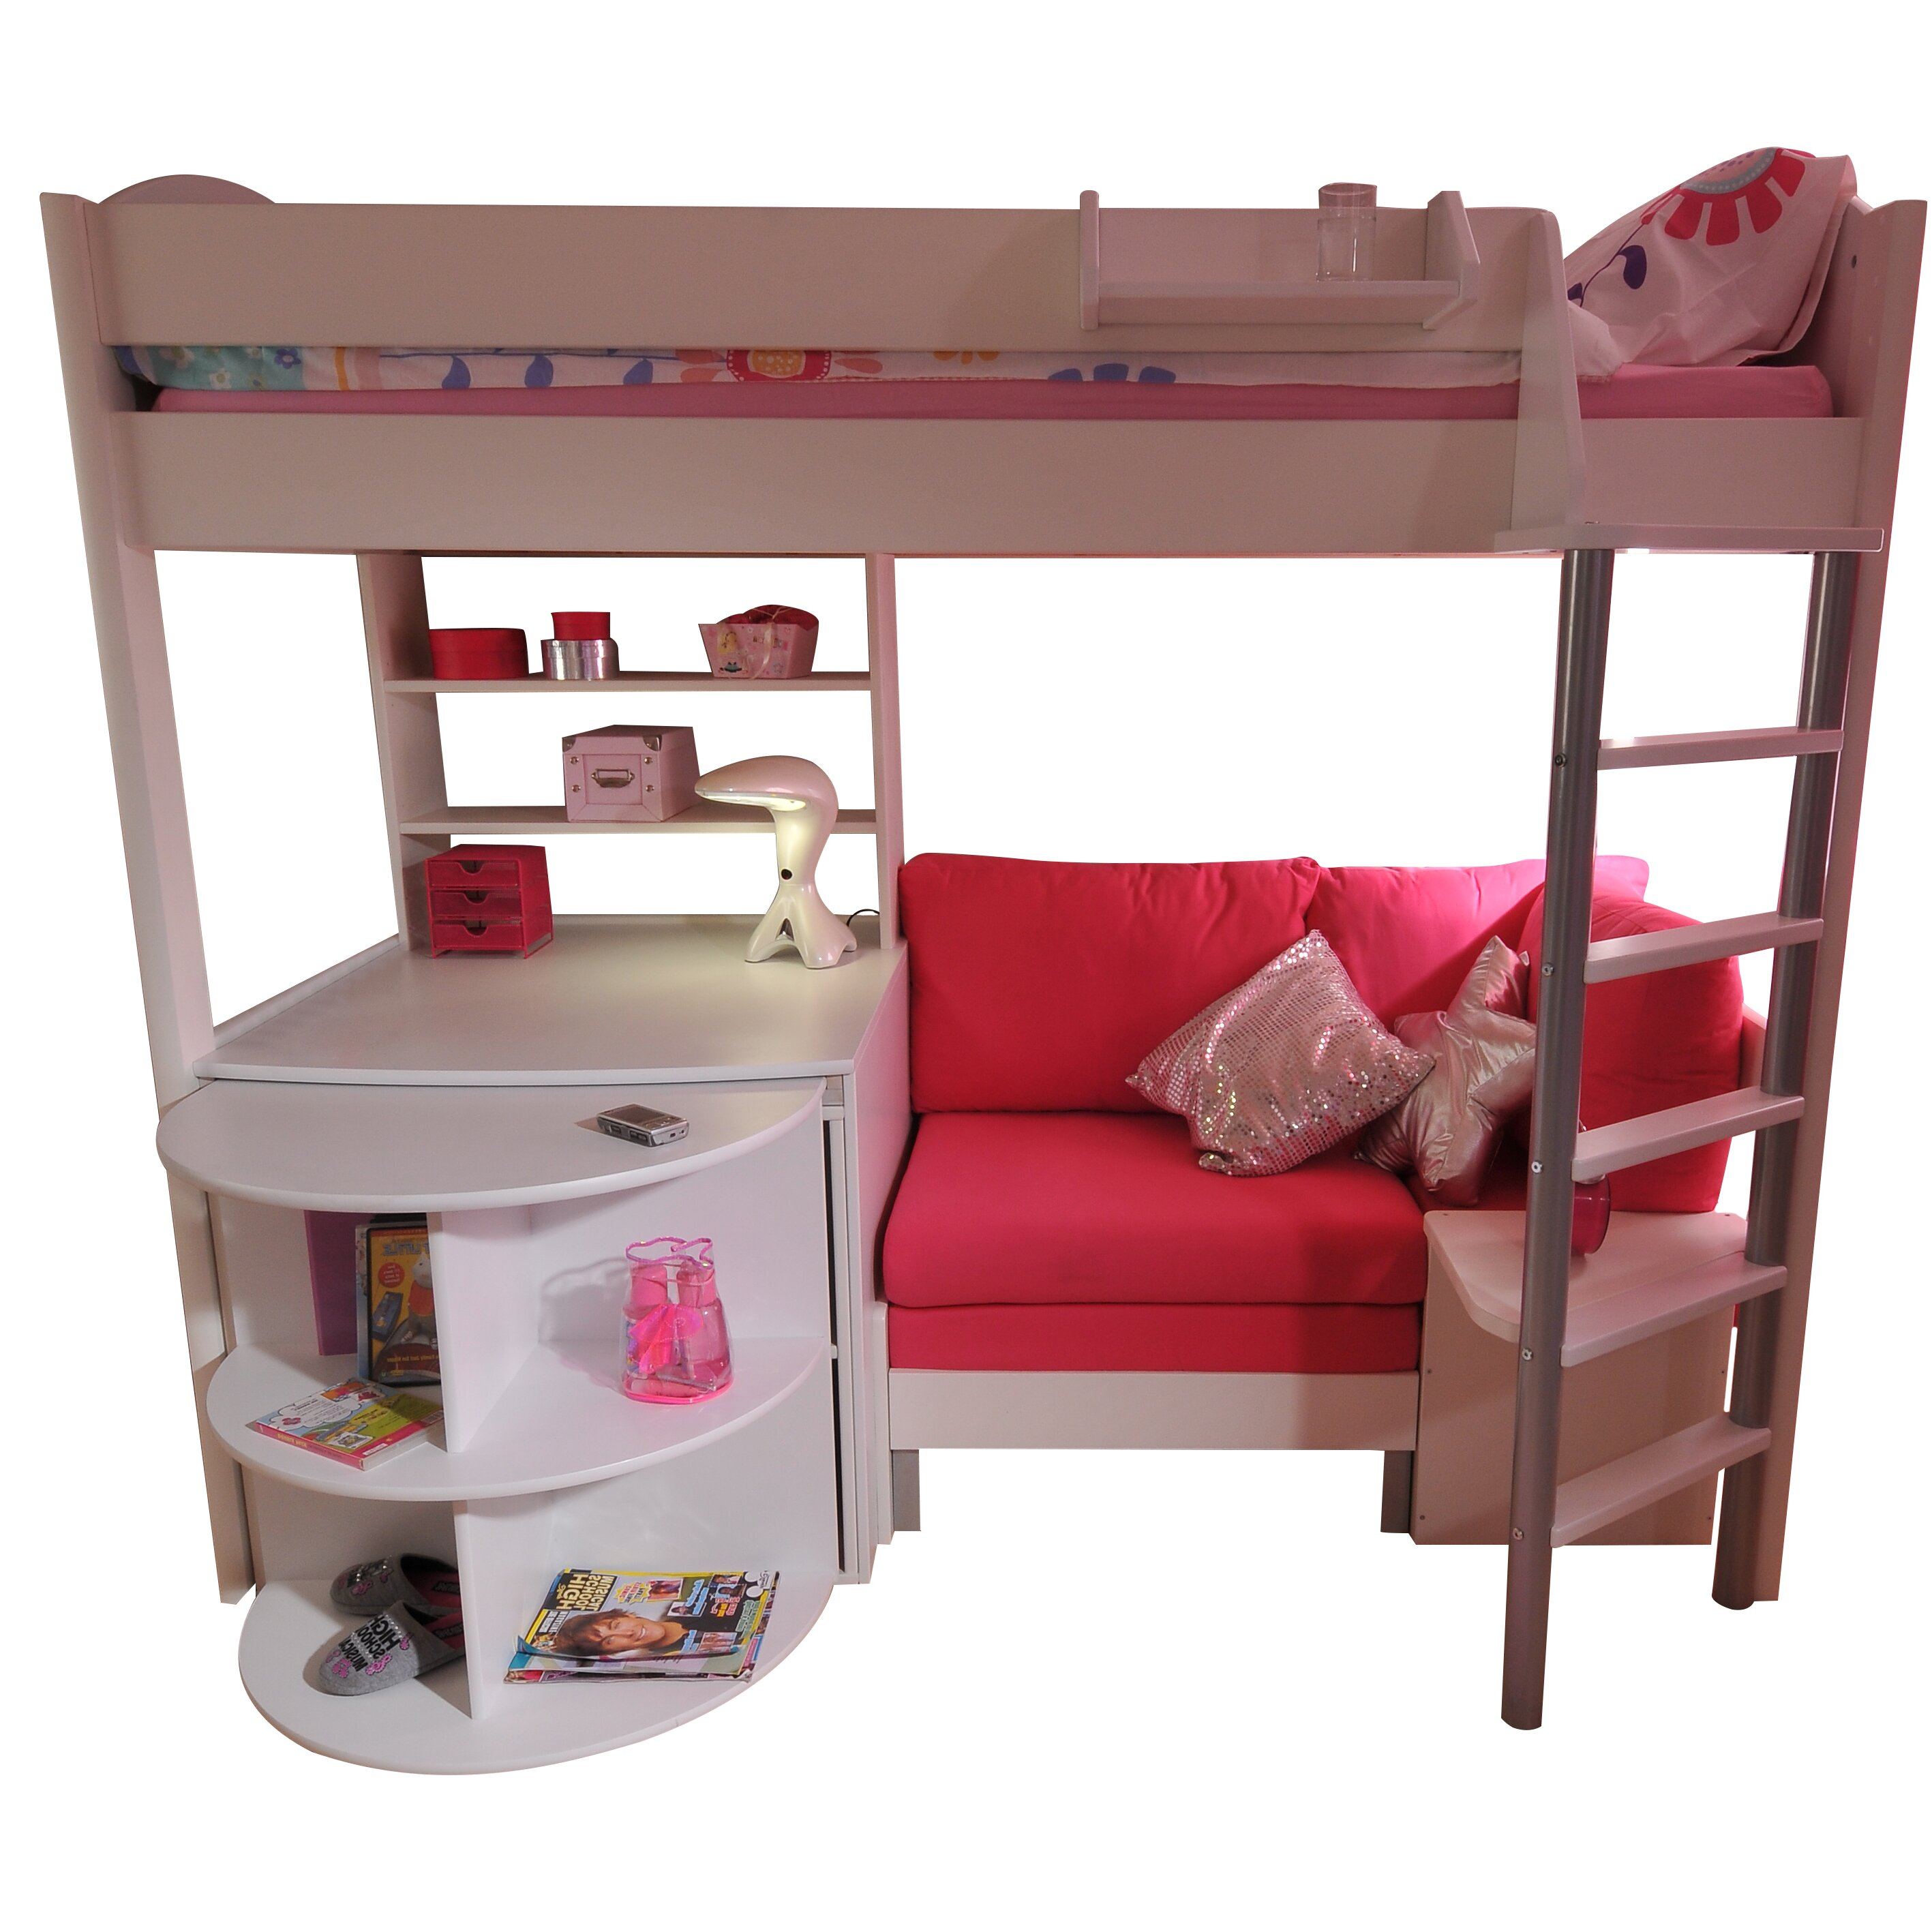 Stompa Casa European Single L Shaped Bunk Bed With Storage